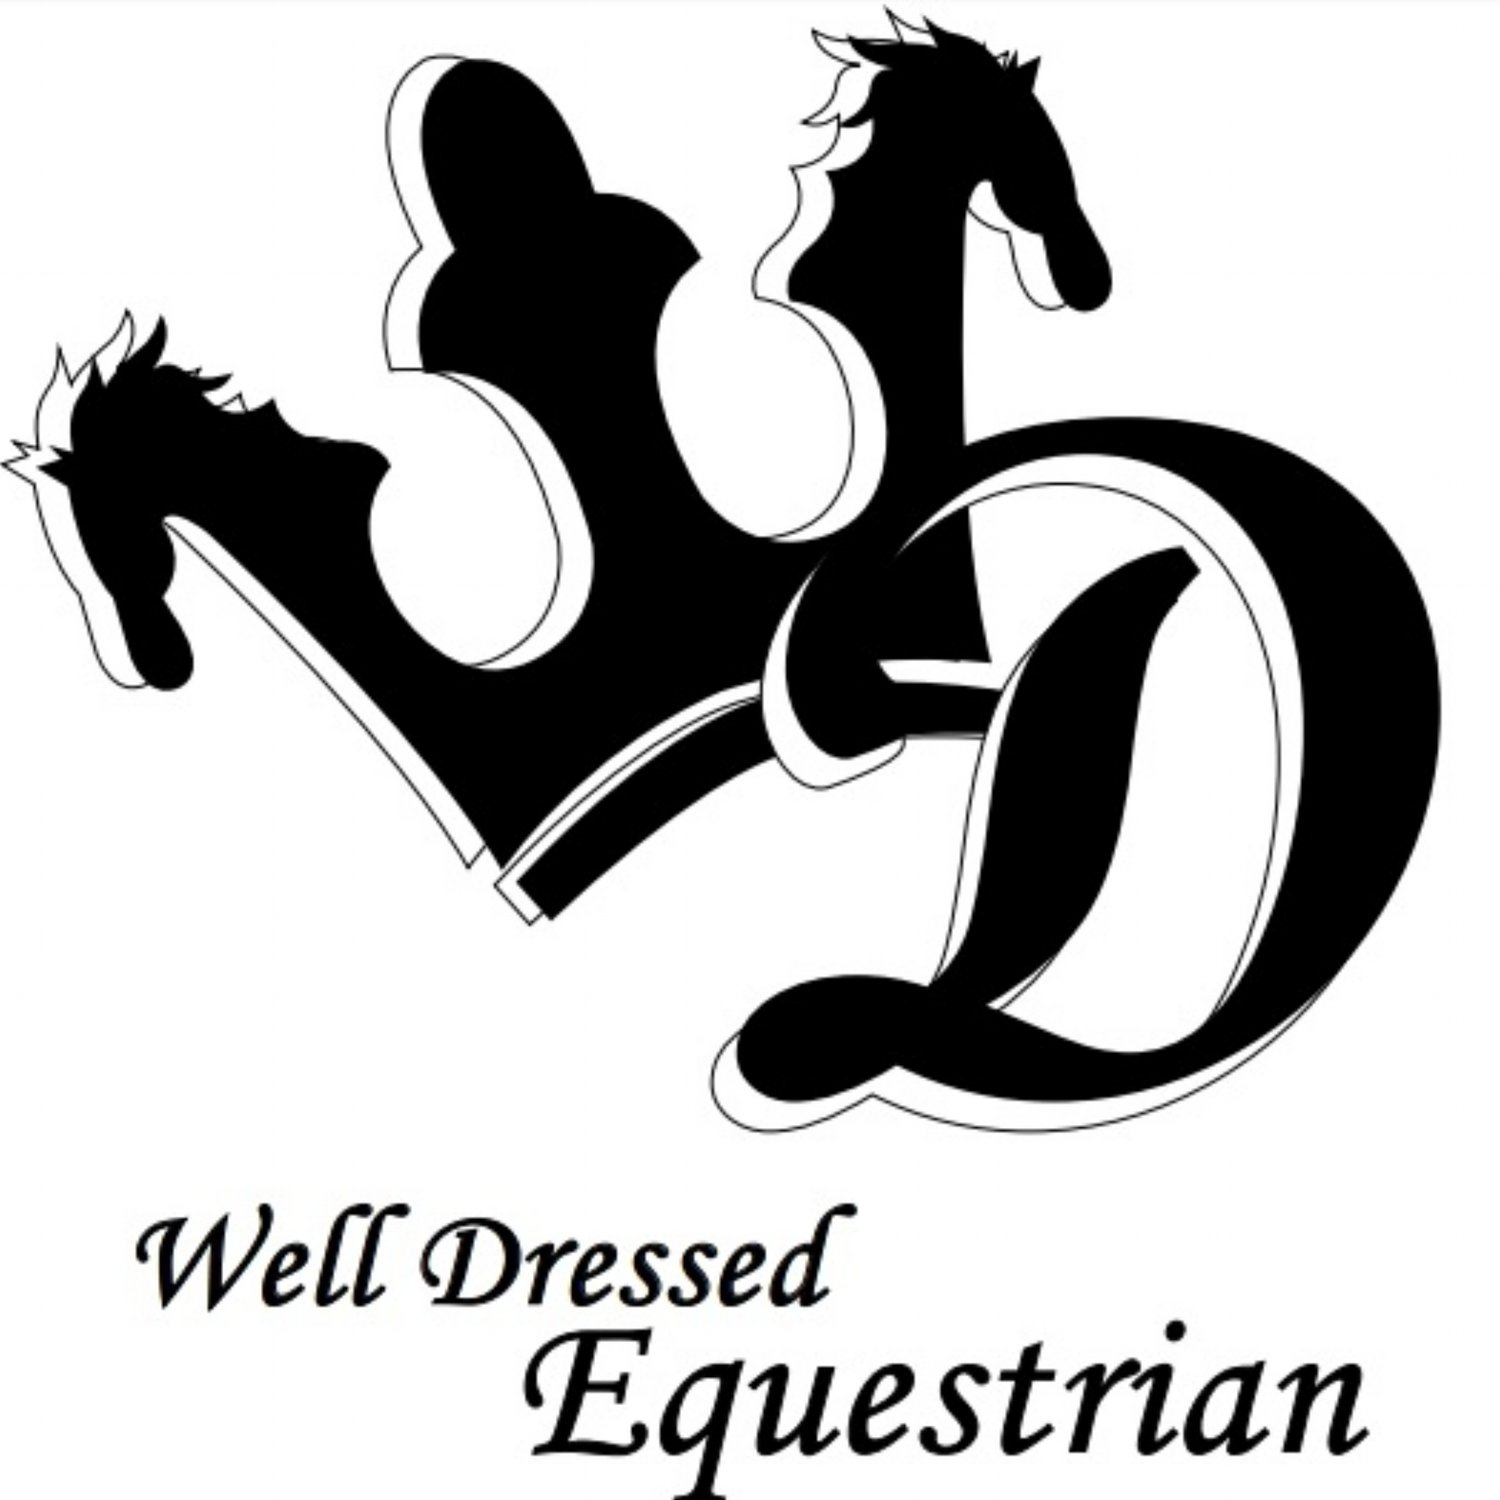 Well Dressed Equestrian